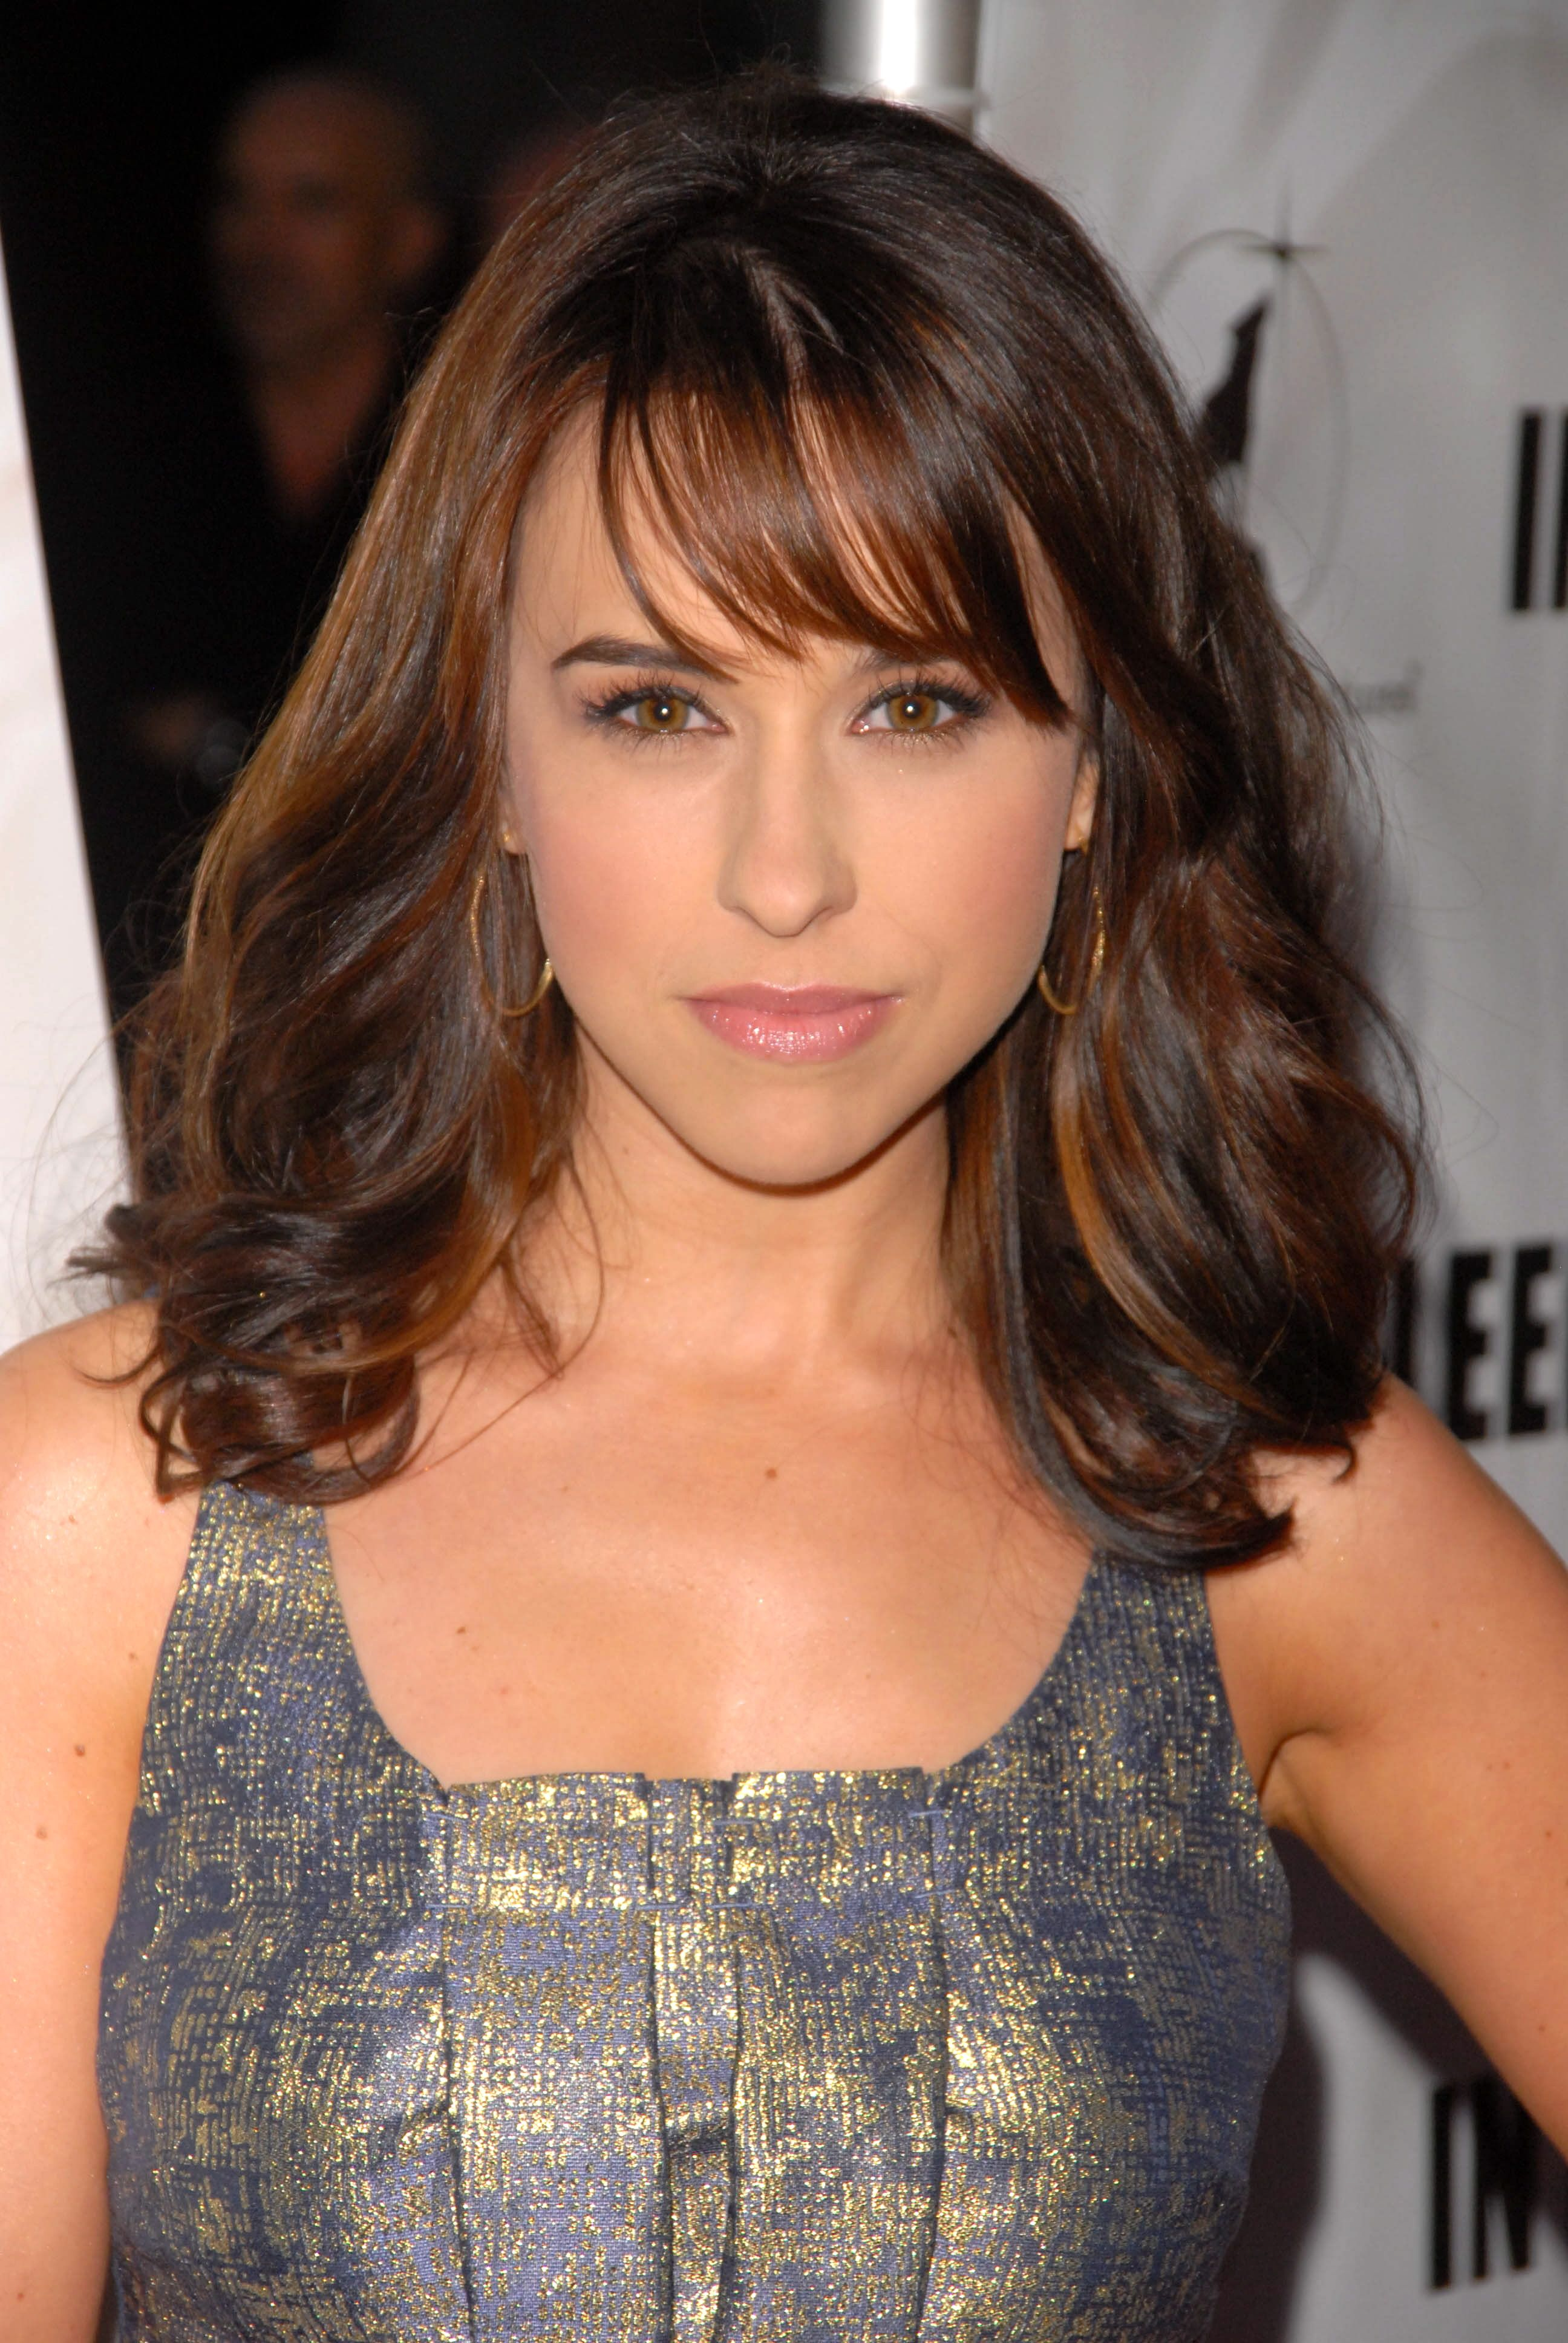 Hacked Lacey Chabert nude (53 photos), Topless, Leaked, Selfie, lingerie 2015